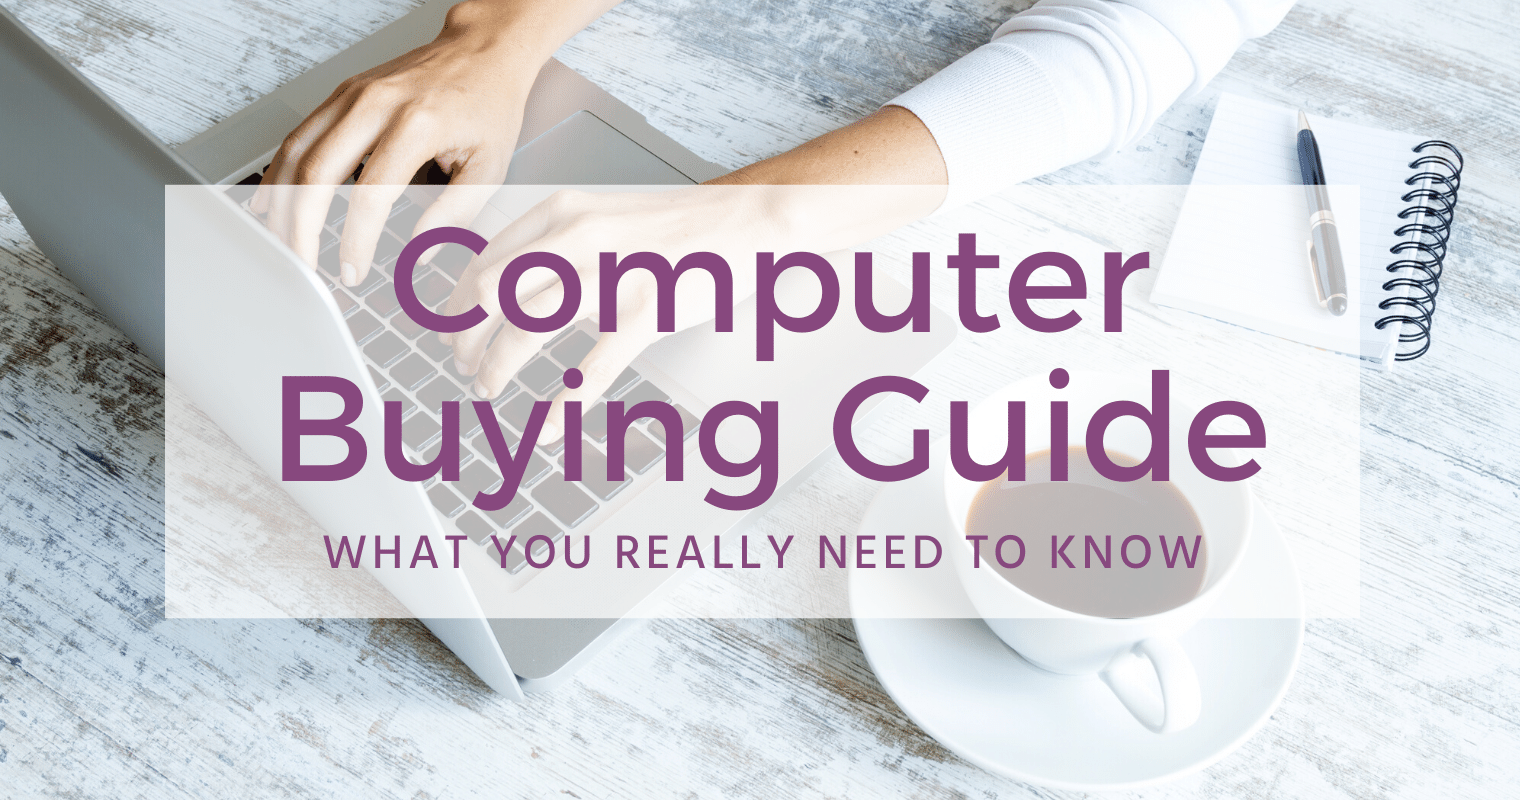 Looking for a new computer? This guide tells you everything you need to know.